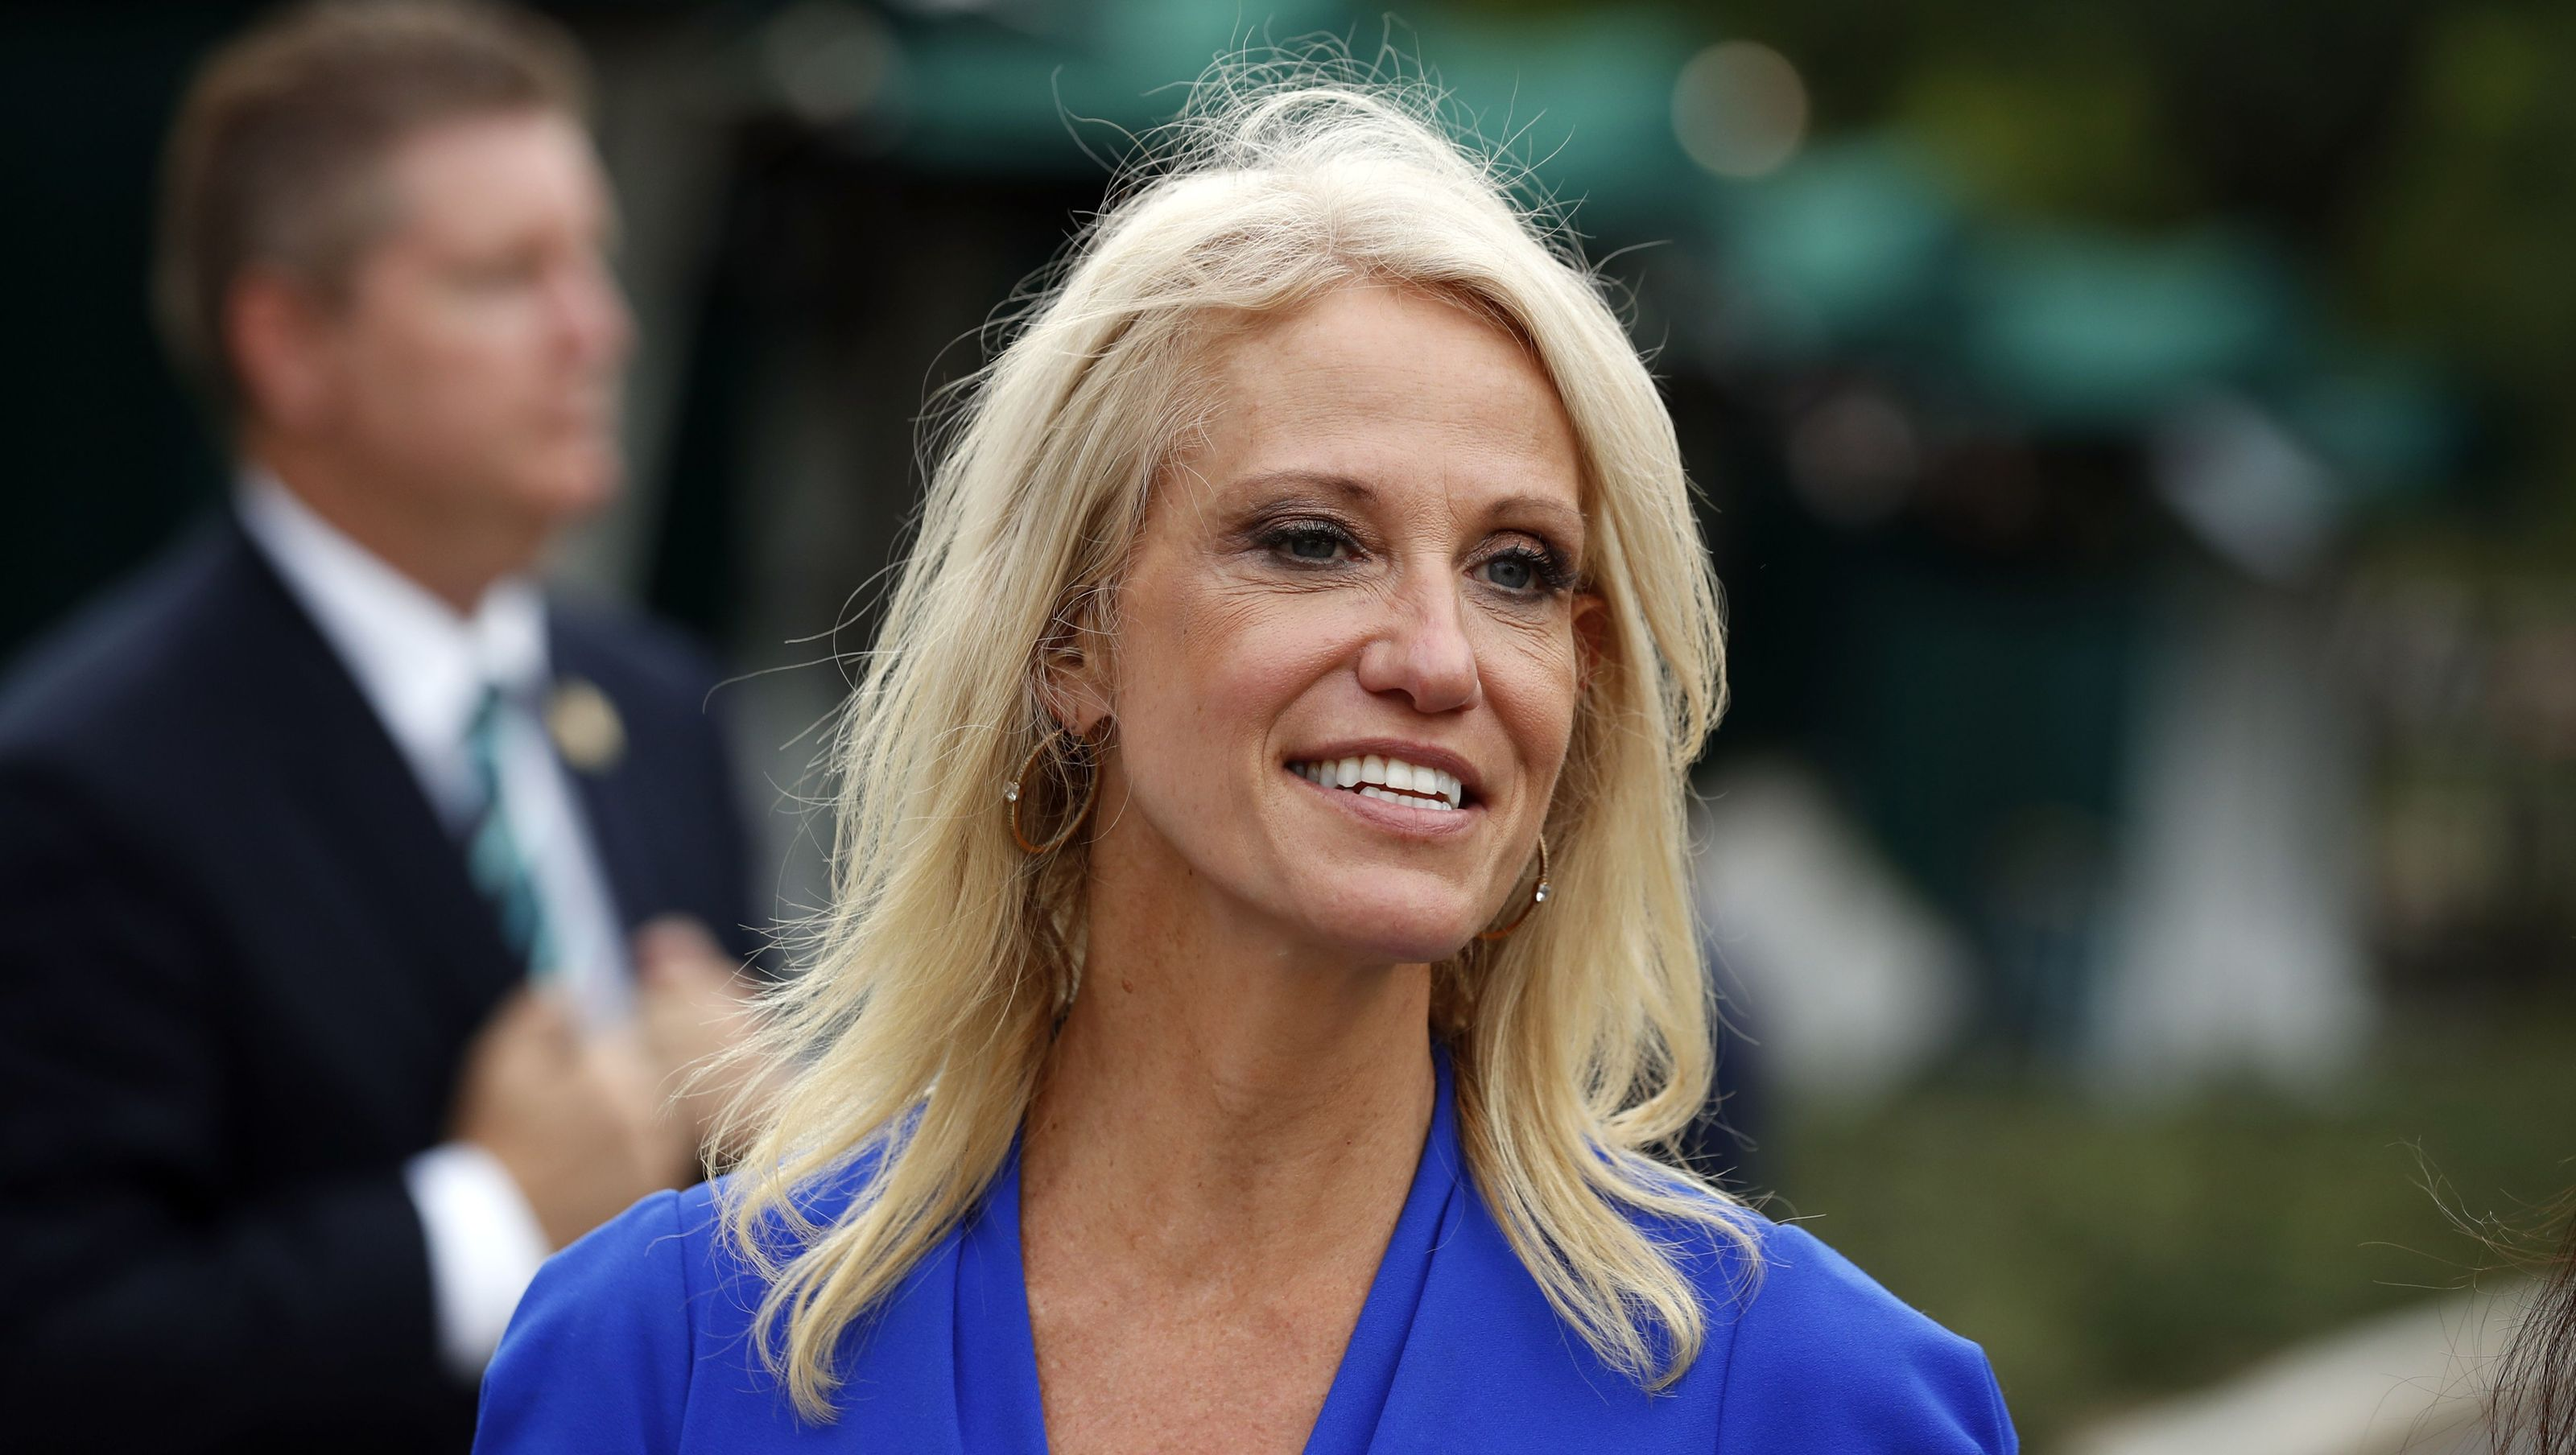 Kellyanne Conway S Husband Trump Administration Is A Dumpster Fire Trump Advisors Top Trumps Conway